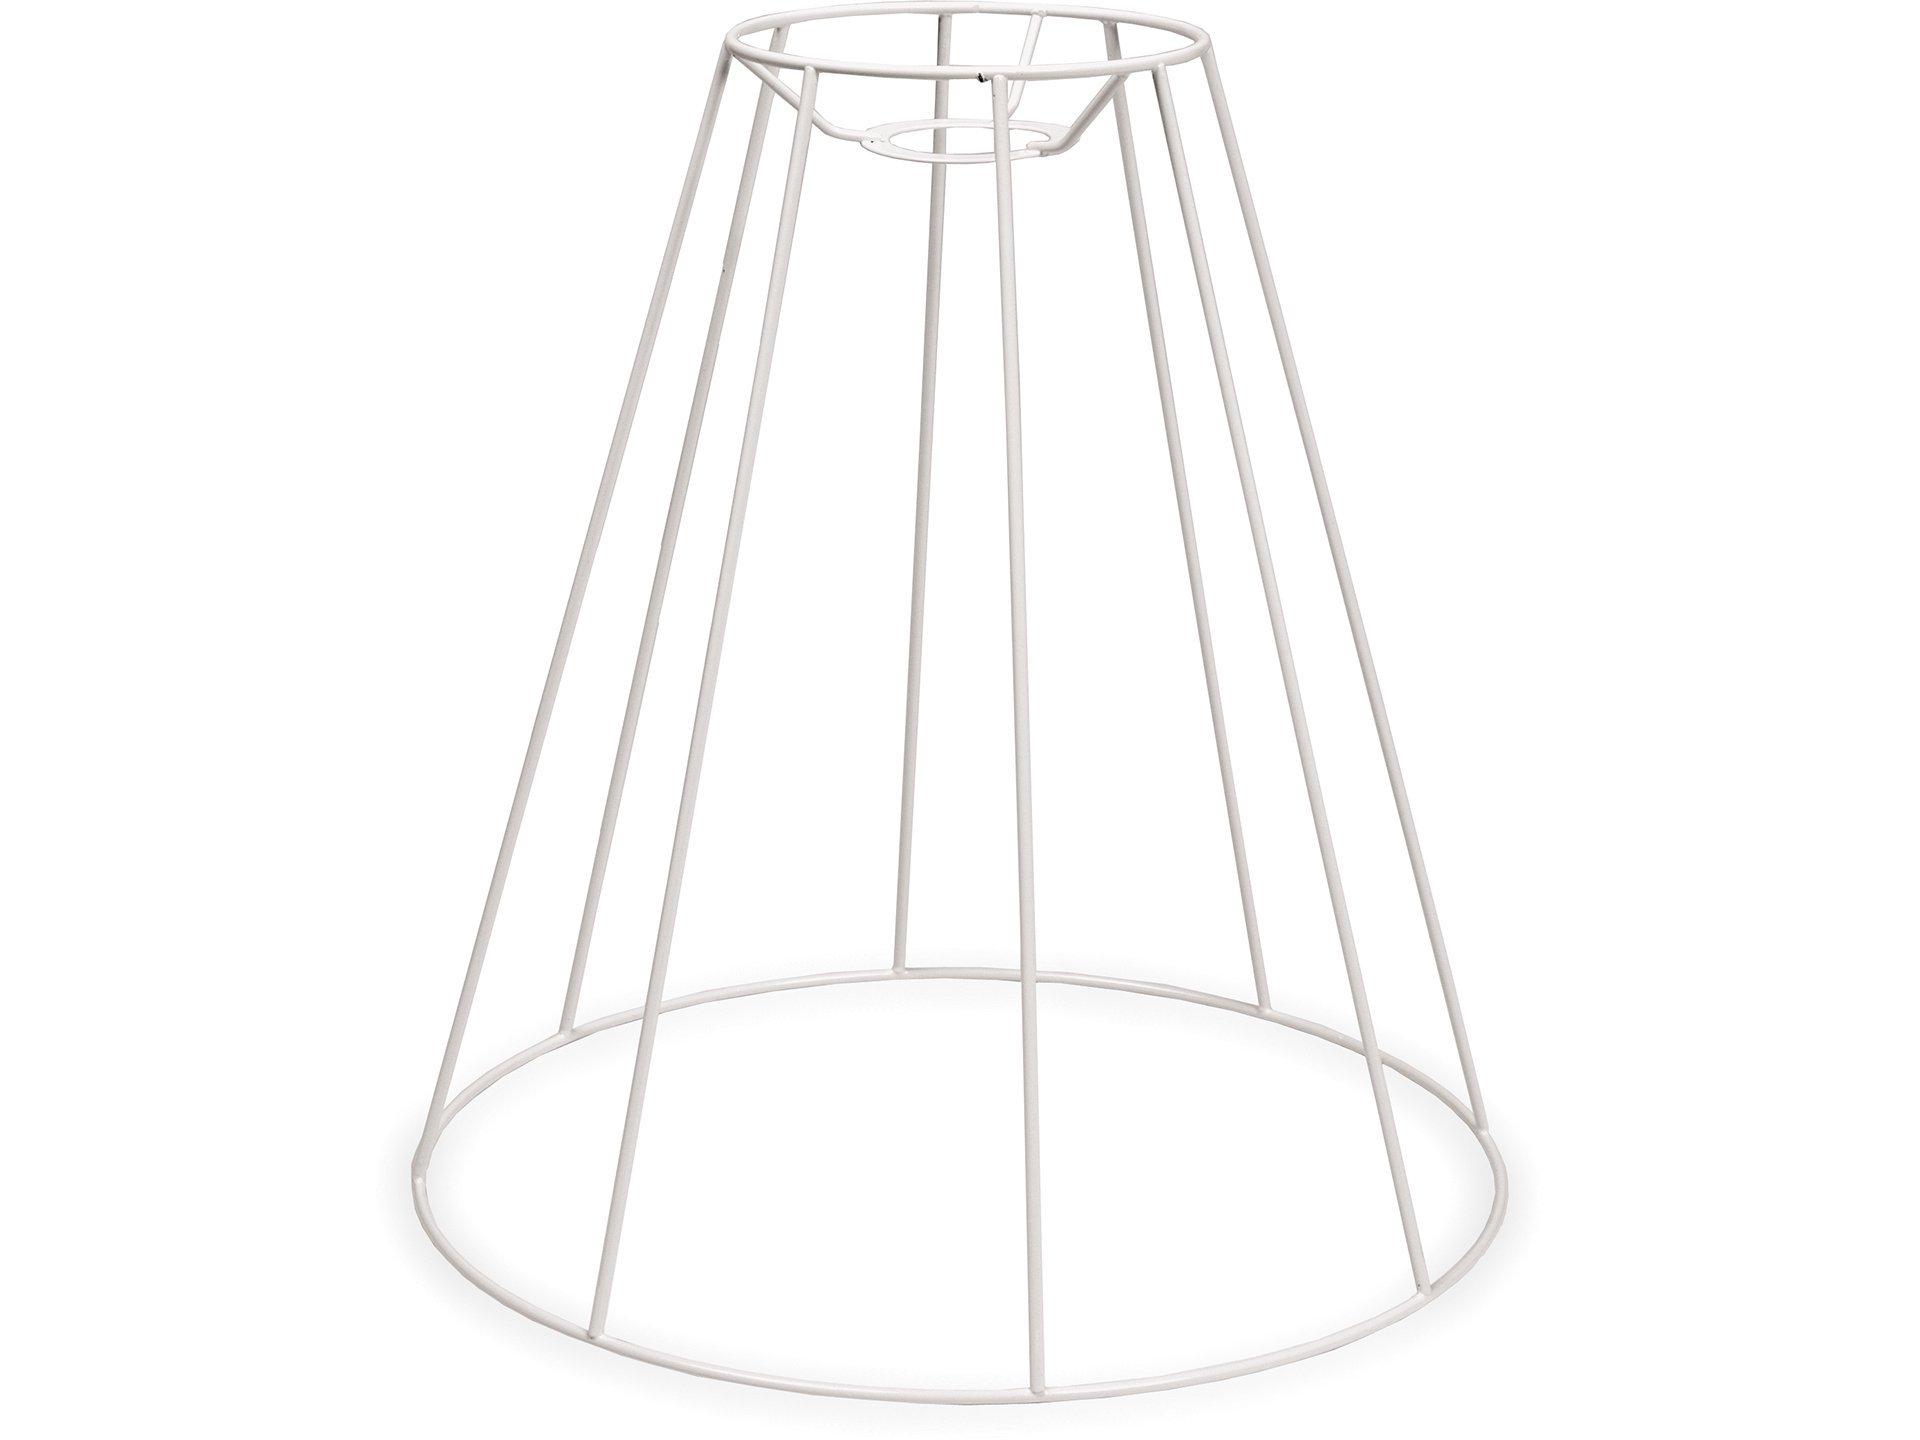 Buy Lampshade frame, round, conical (for hanging lamp) online at Modulor